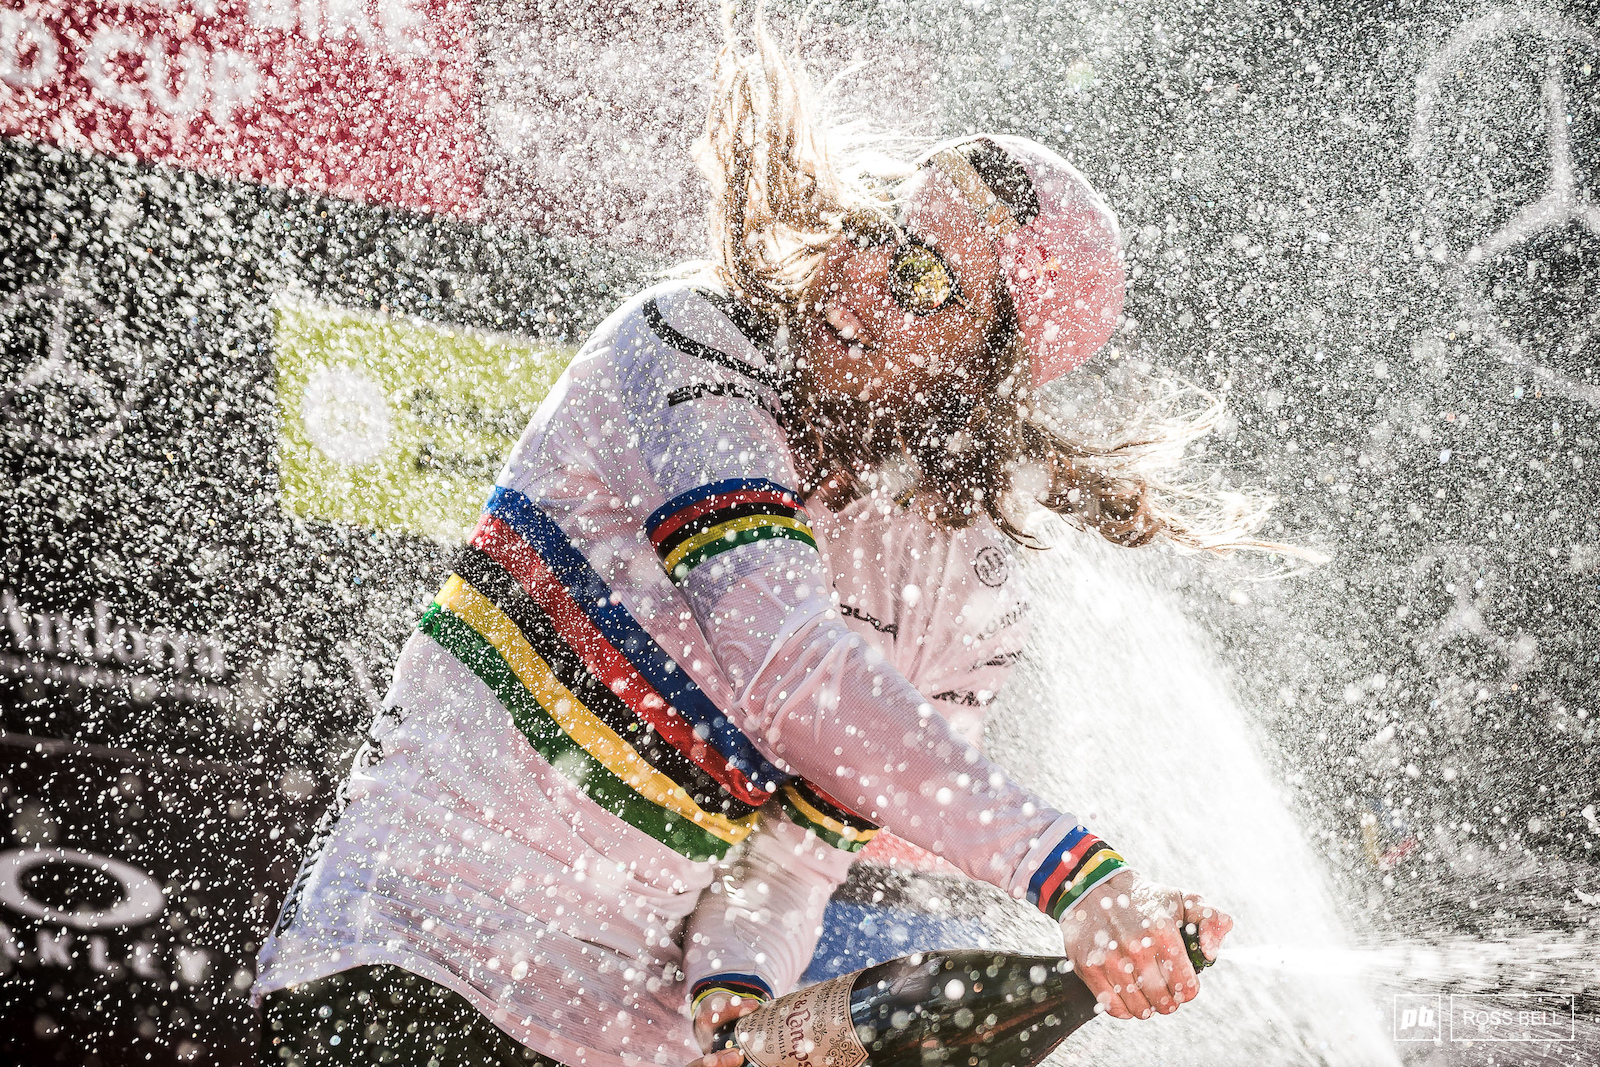 Victory tastes sweet for Rachel Atherton.